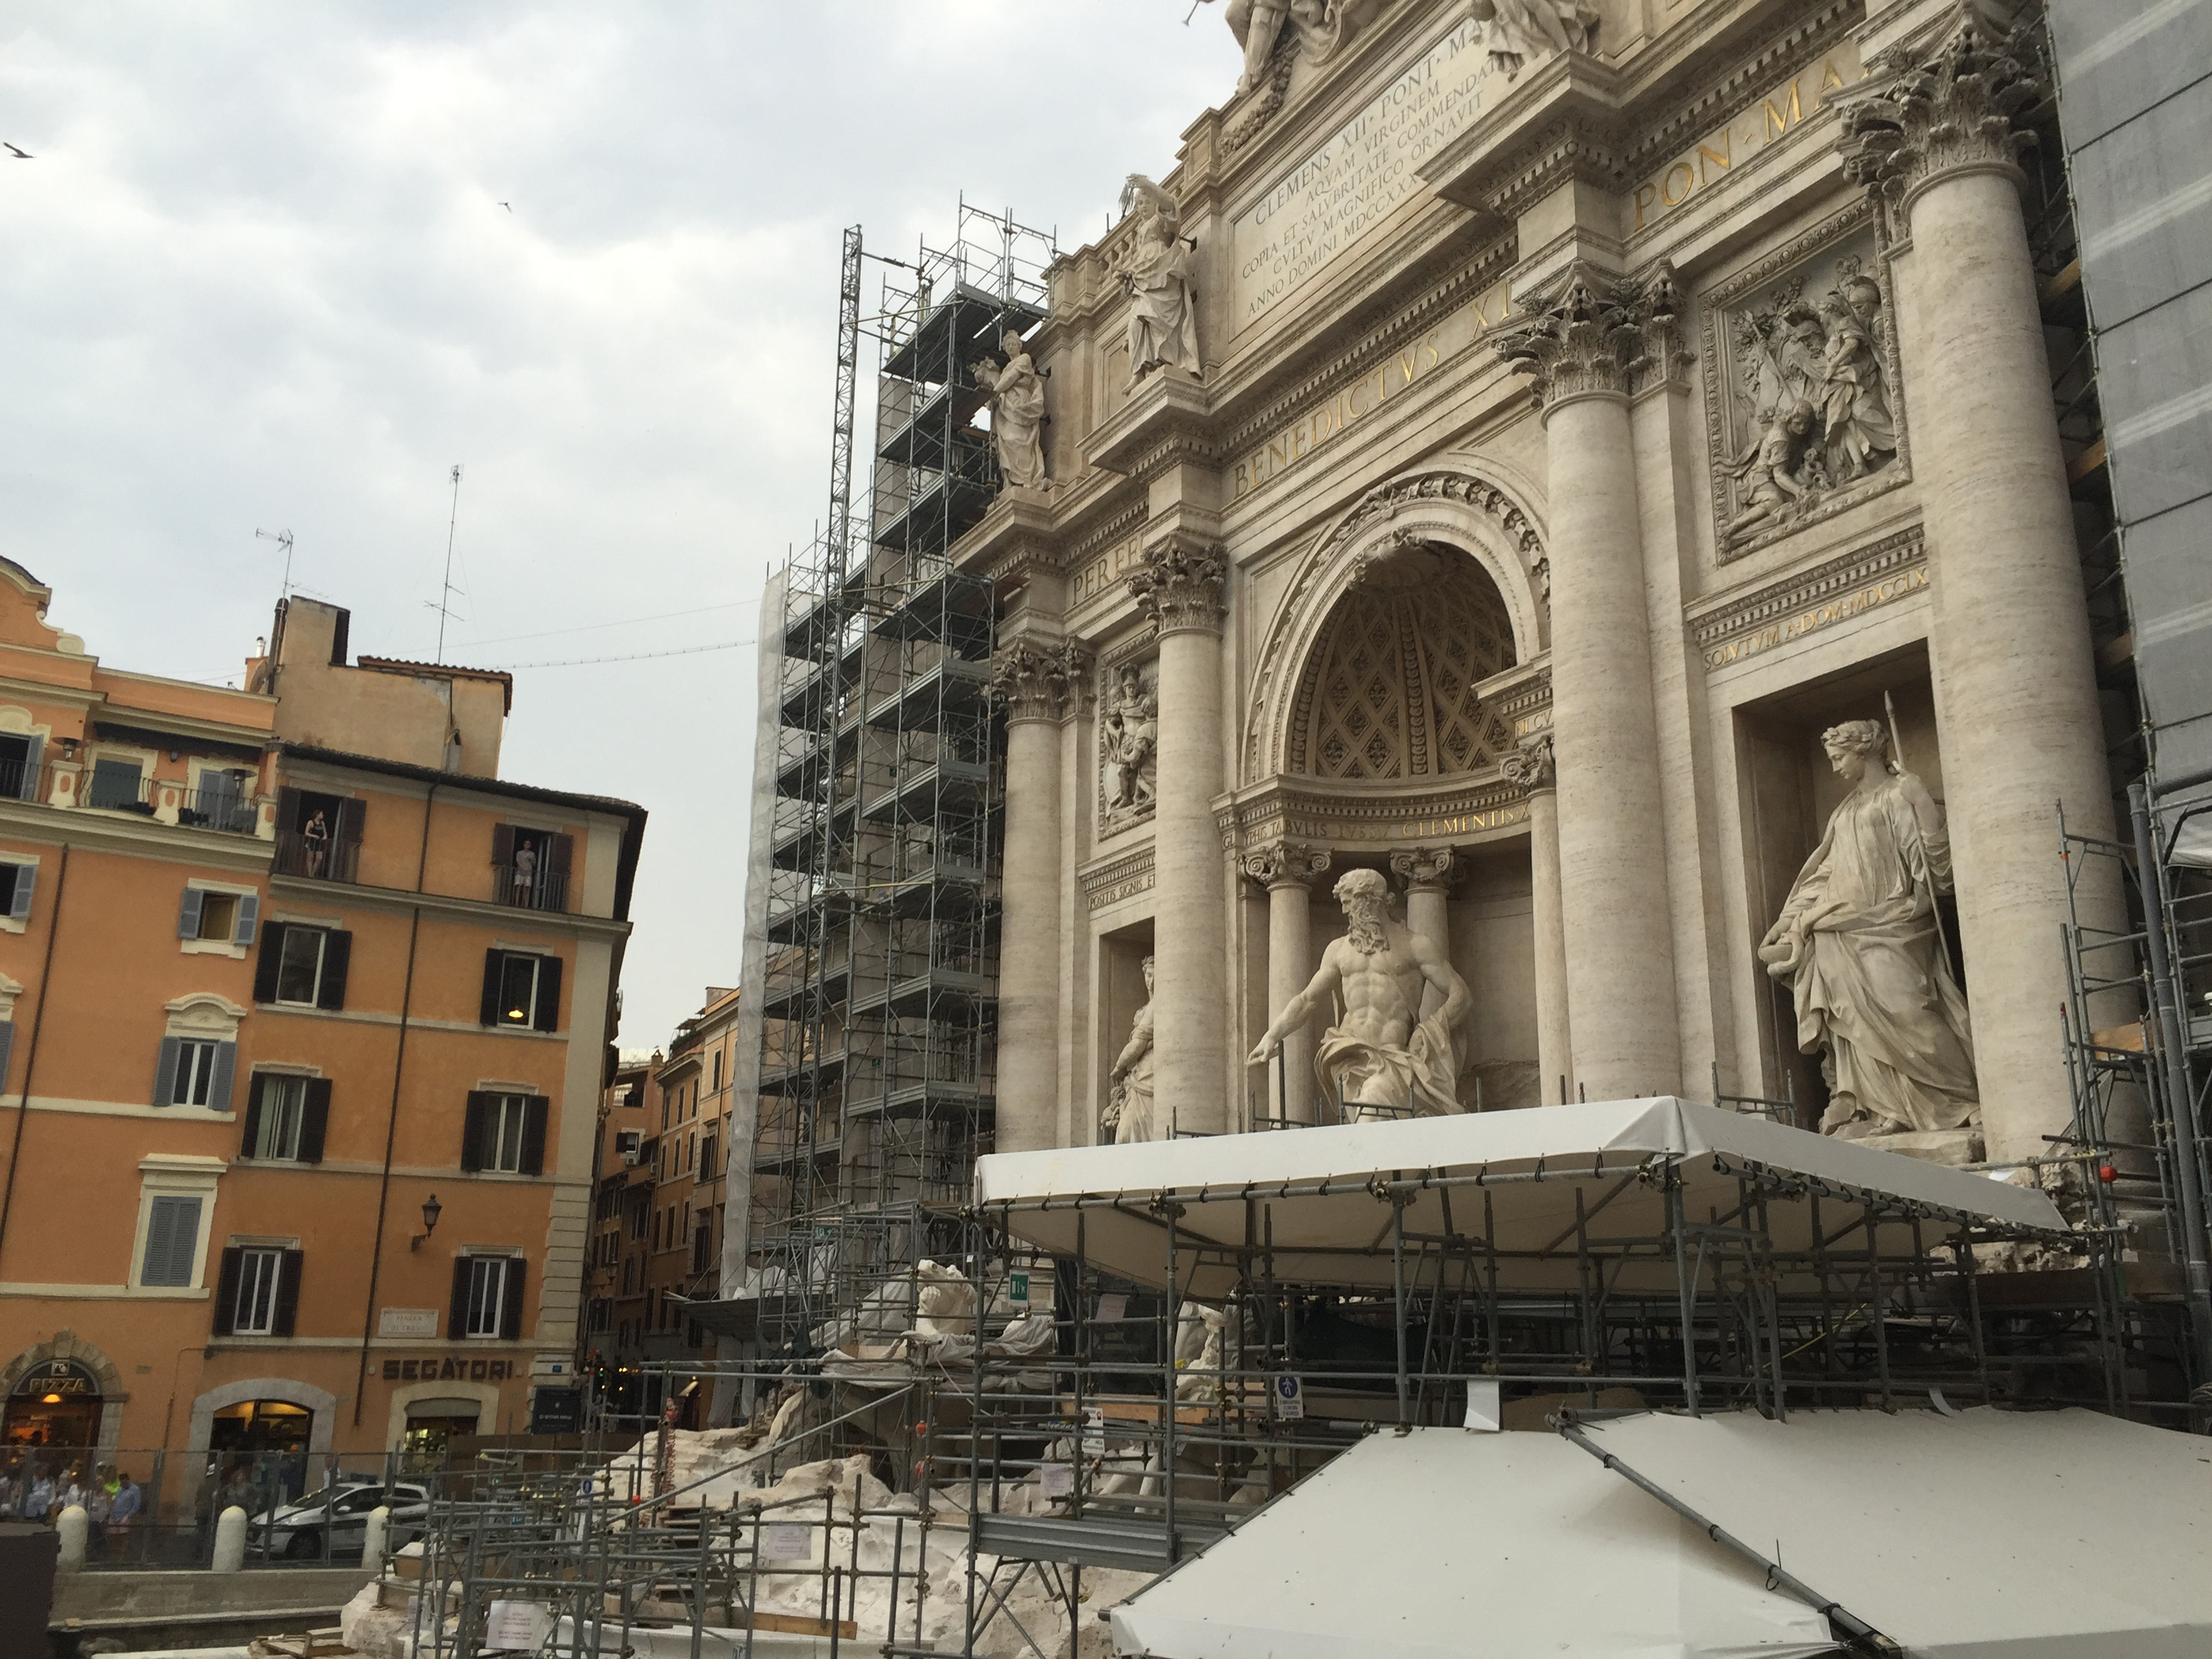 Large fountain sculpture with Roman style architecture and figurines covered in scaffolding.